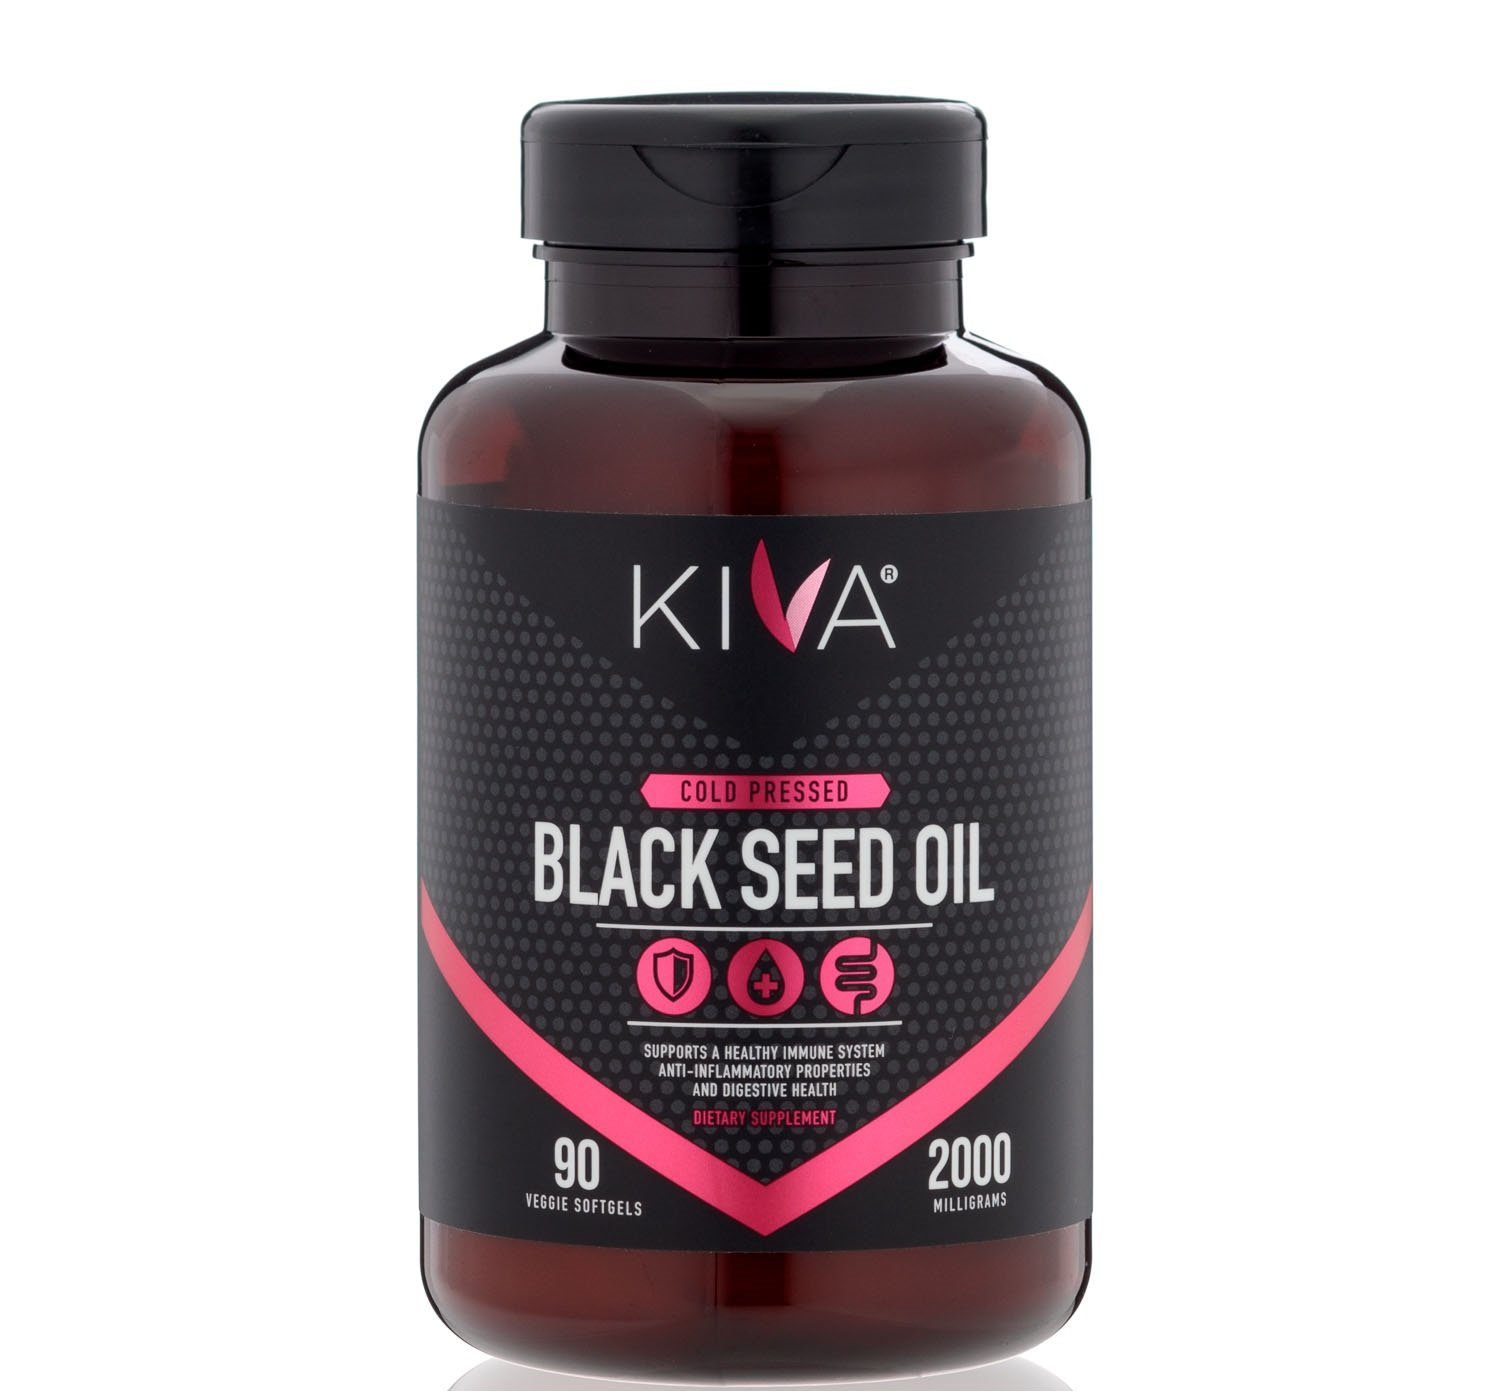 Kiva Black Seed Oil Capsules, 2000 mg per Serving- Organic, Cold-Pressed and RAW (90 Softgels)